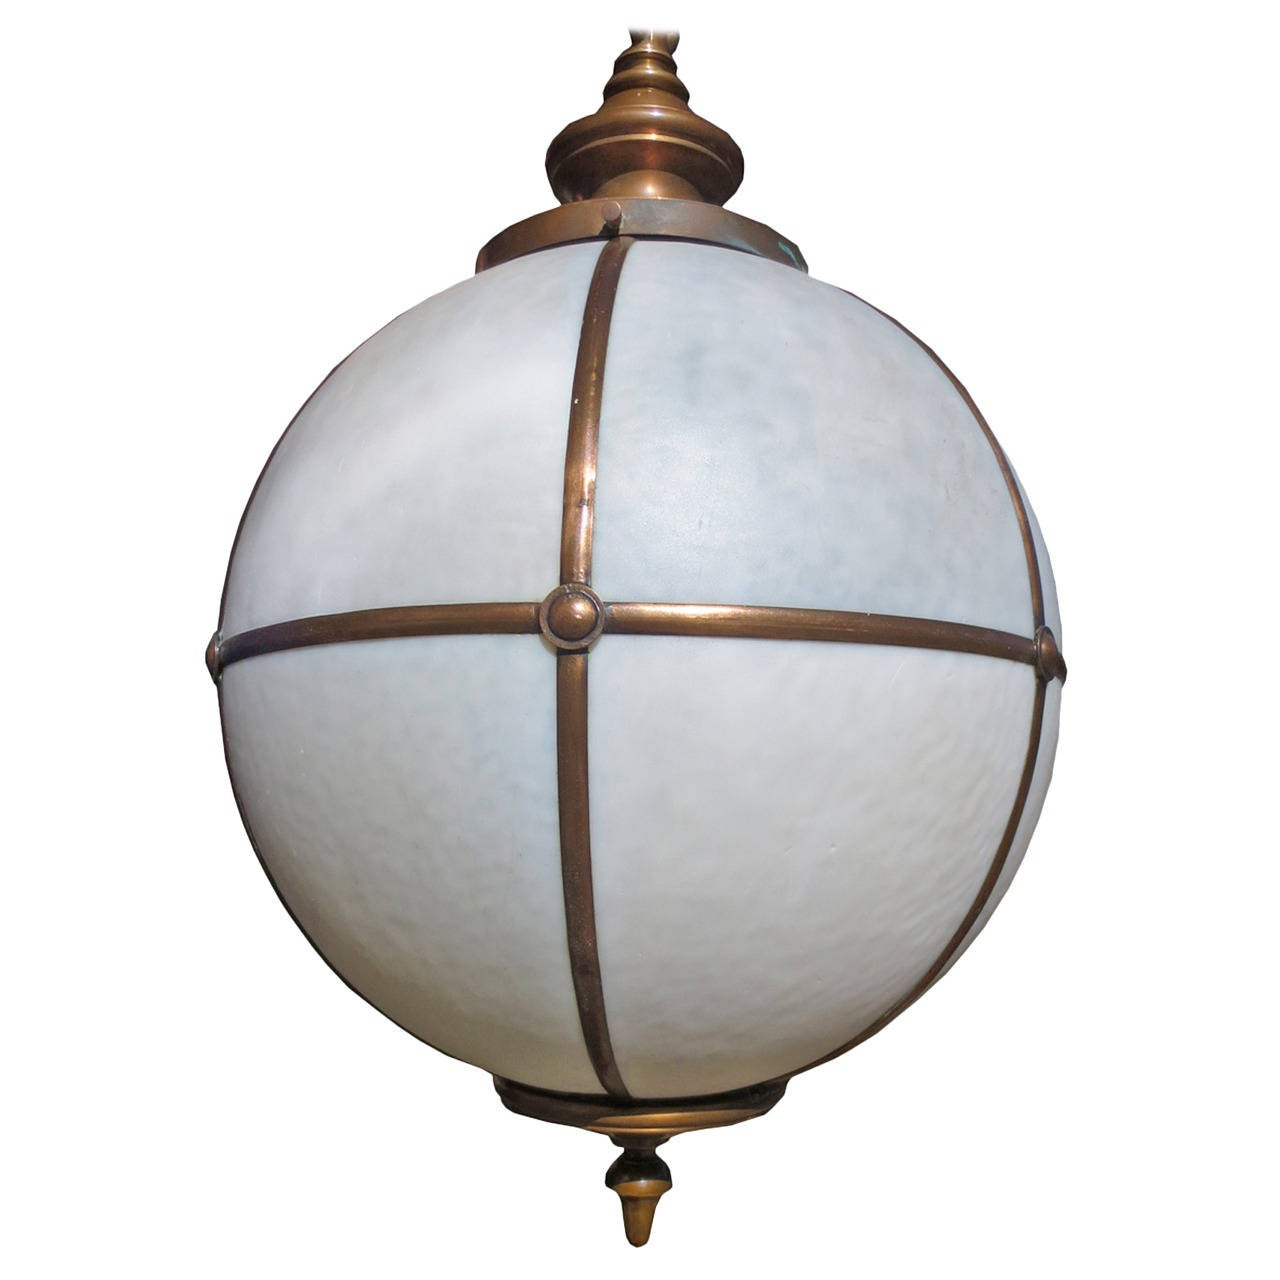 Early 20th Century Large Globe Form Hanging Light Fixture